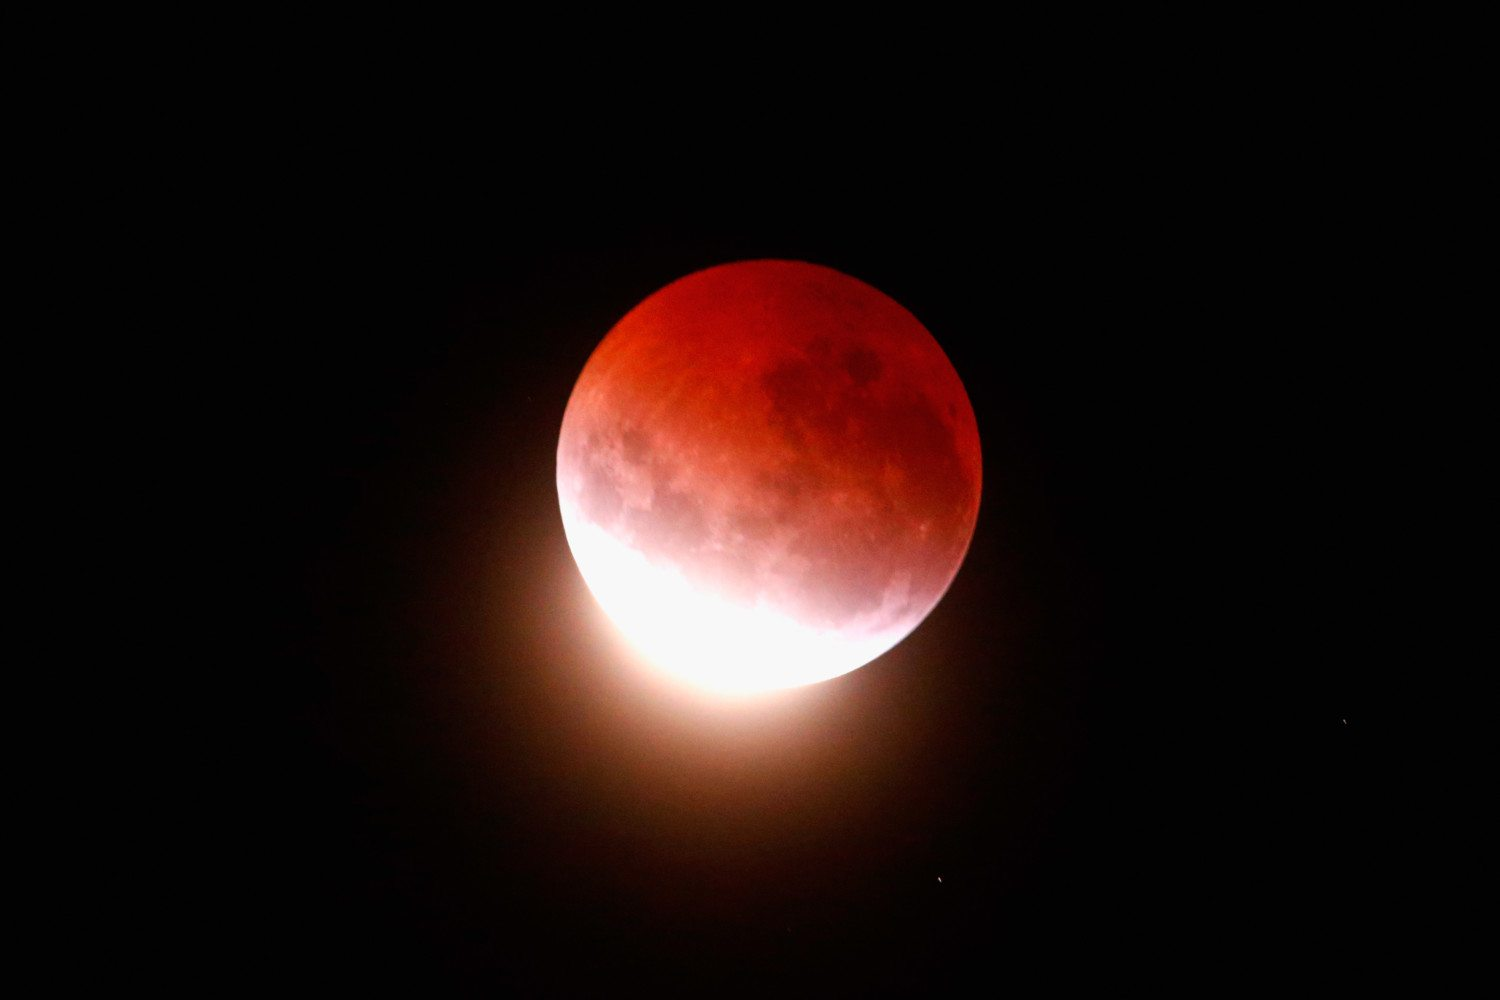 This month's 'blood moon' eclipse to be the longest of the century